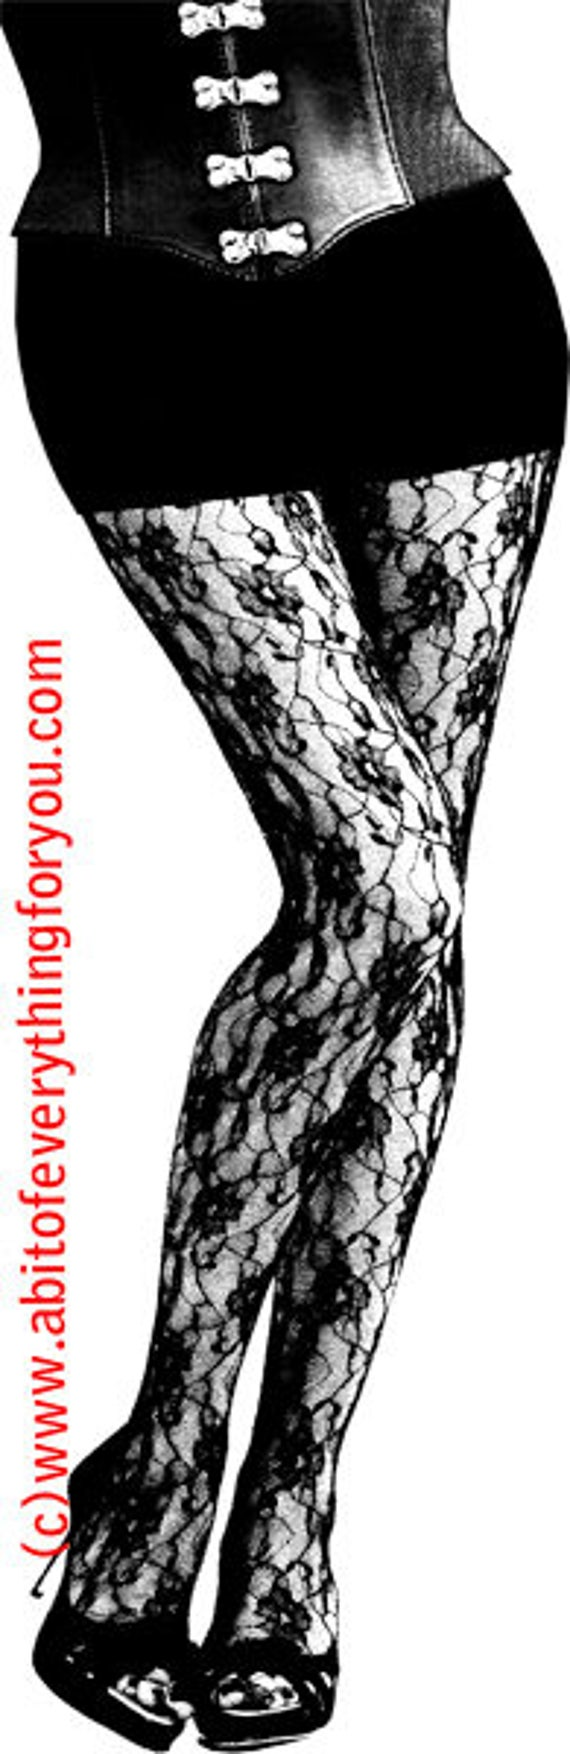 black floral lace stockings clipart png printable art instant download digital image goth fashion graphics corset womens legs high heels